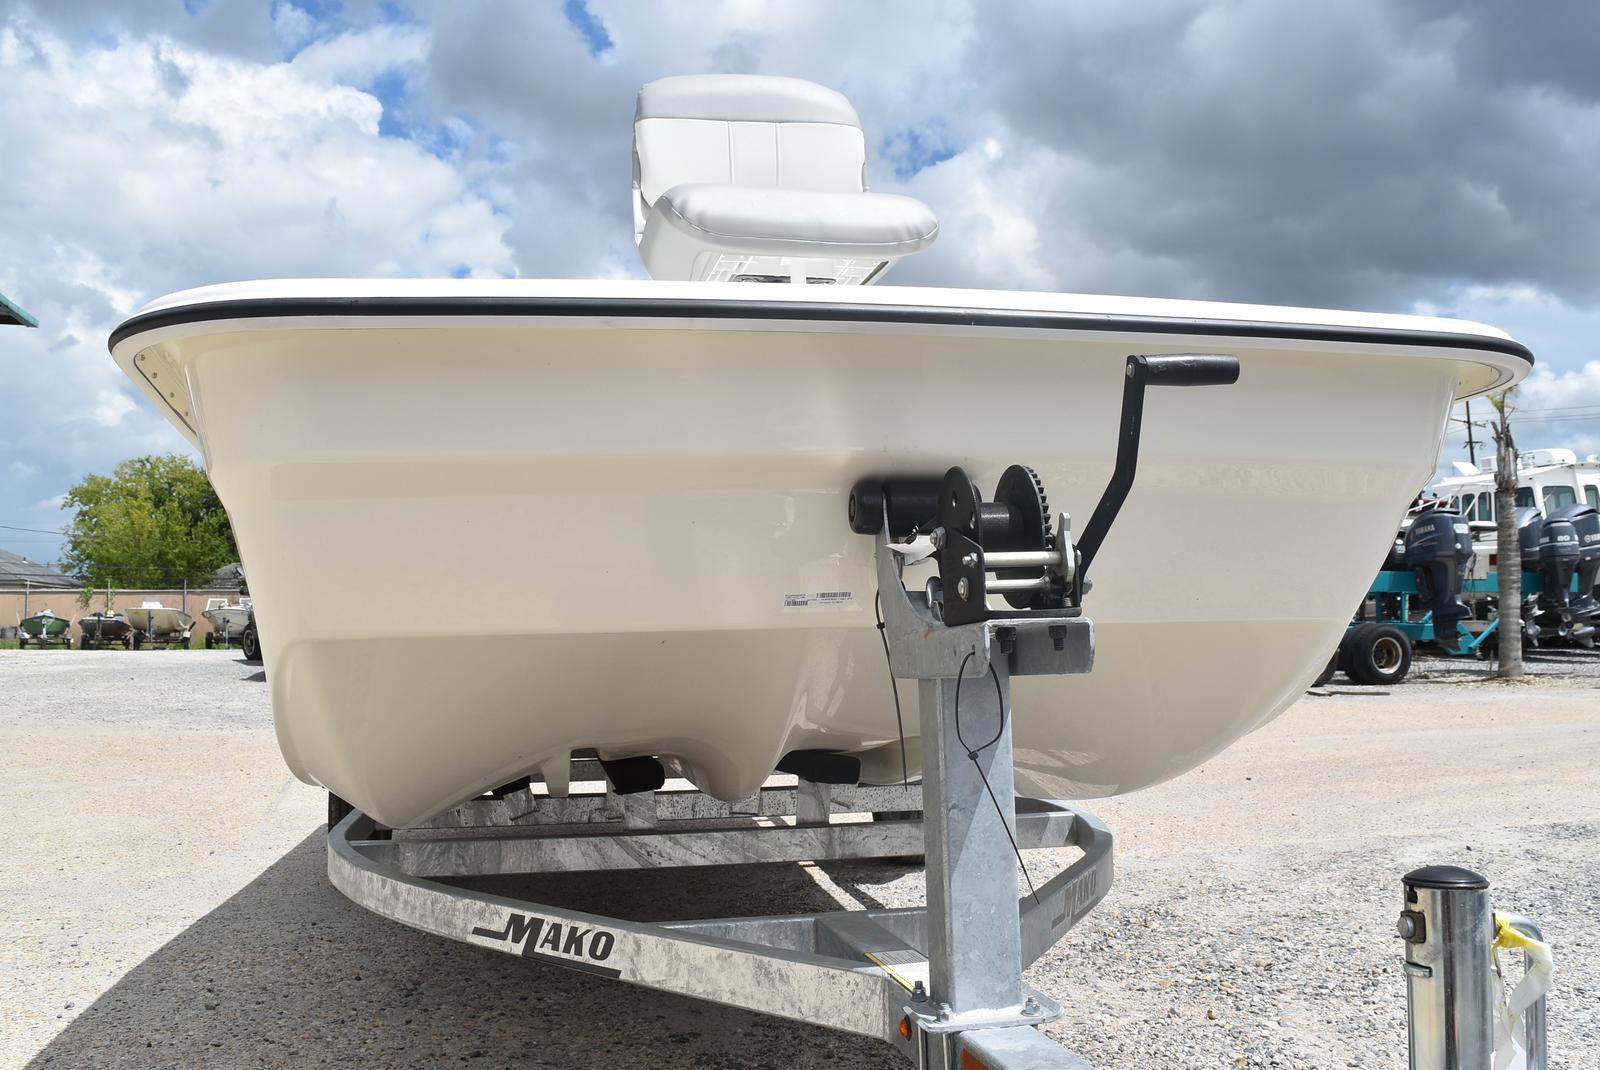 2020 Mako boat for sale, model of the boat is Pro Skiff 17, 75 ELPT & Image # 319 of 702